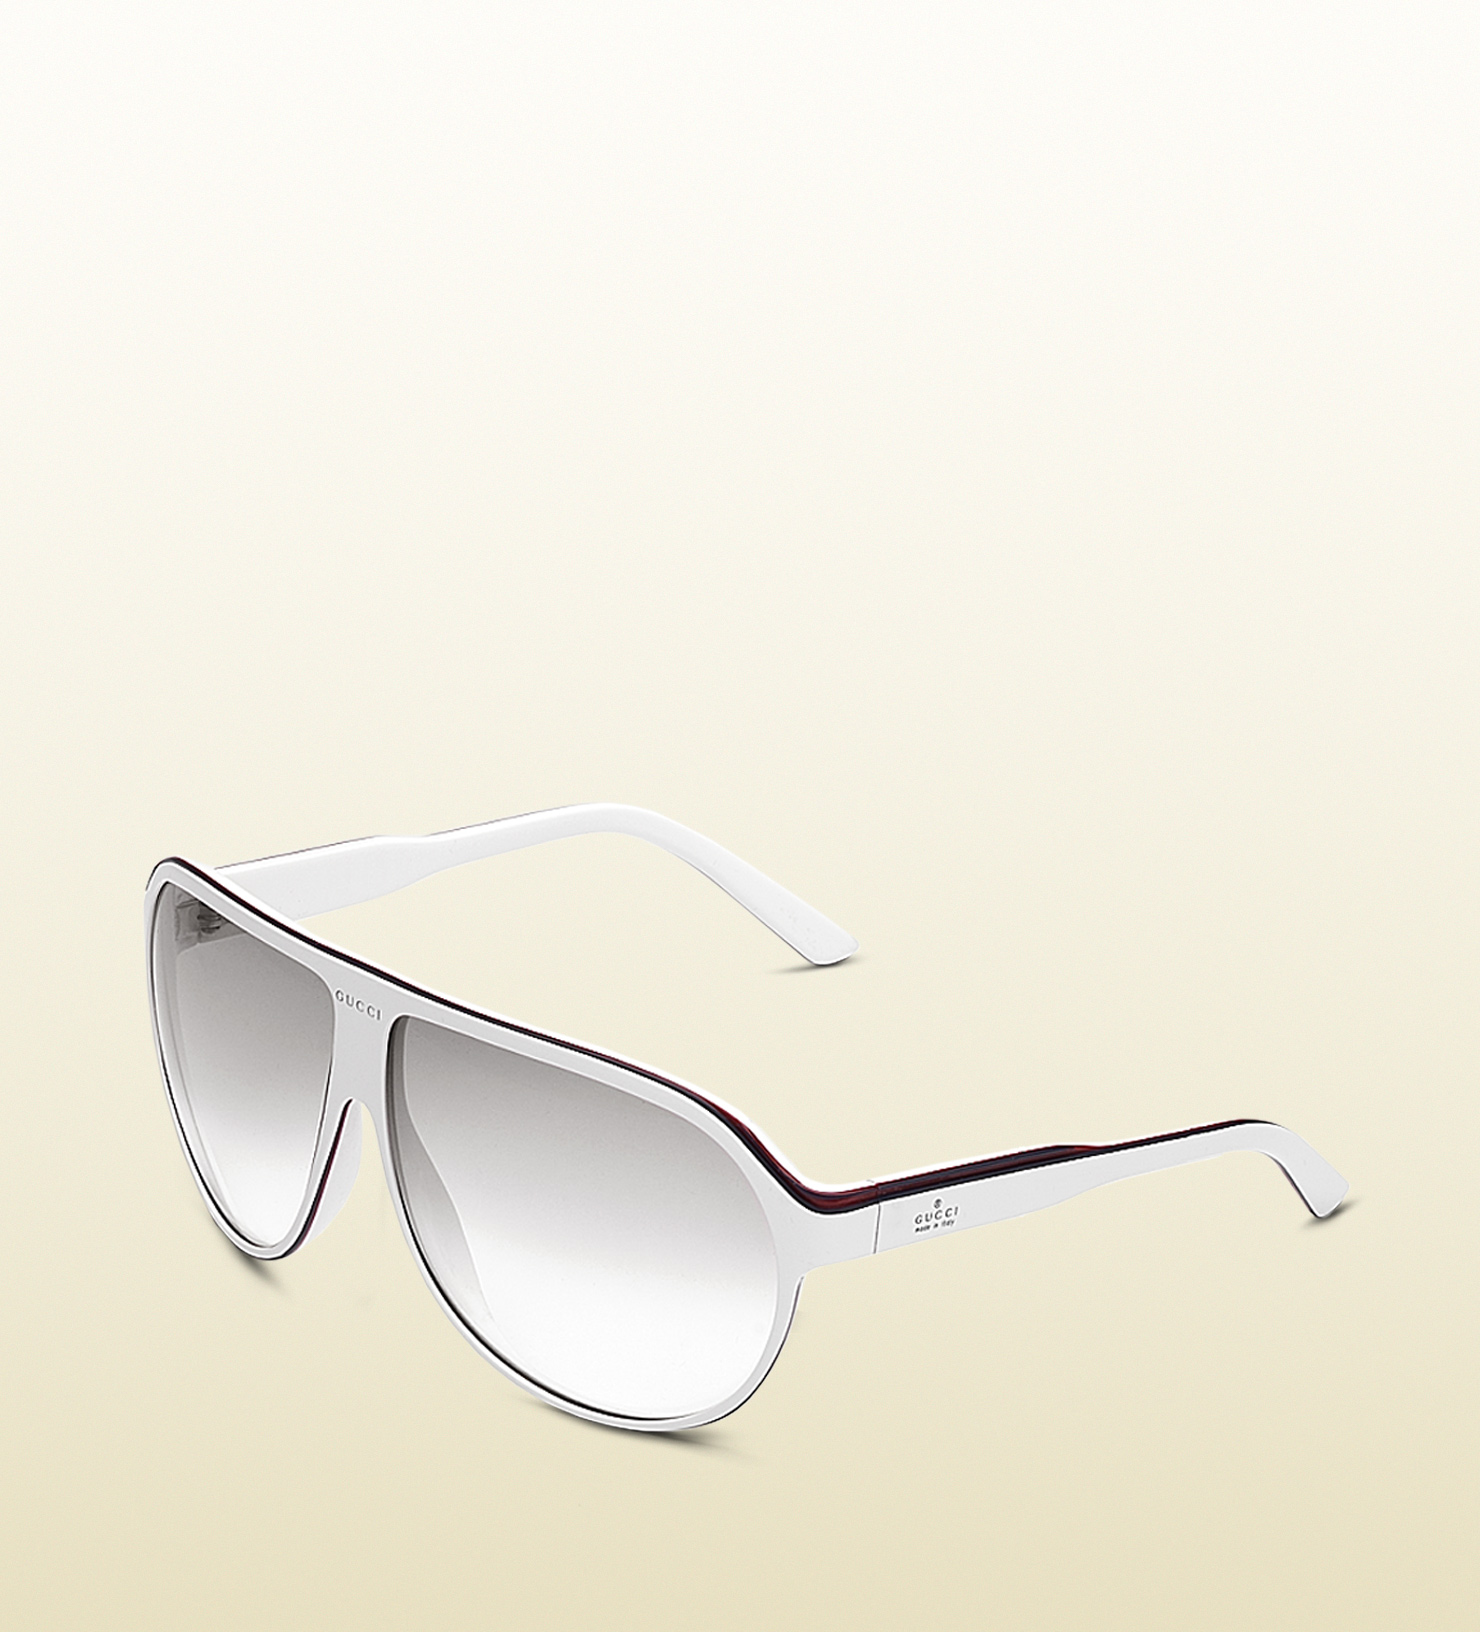 66fb1431461 Lyst - Gucci Large Aviator Frame Sunglasses with Gucci Trademark ...